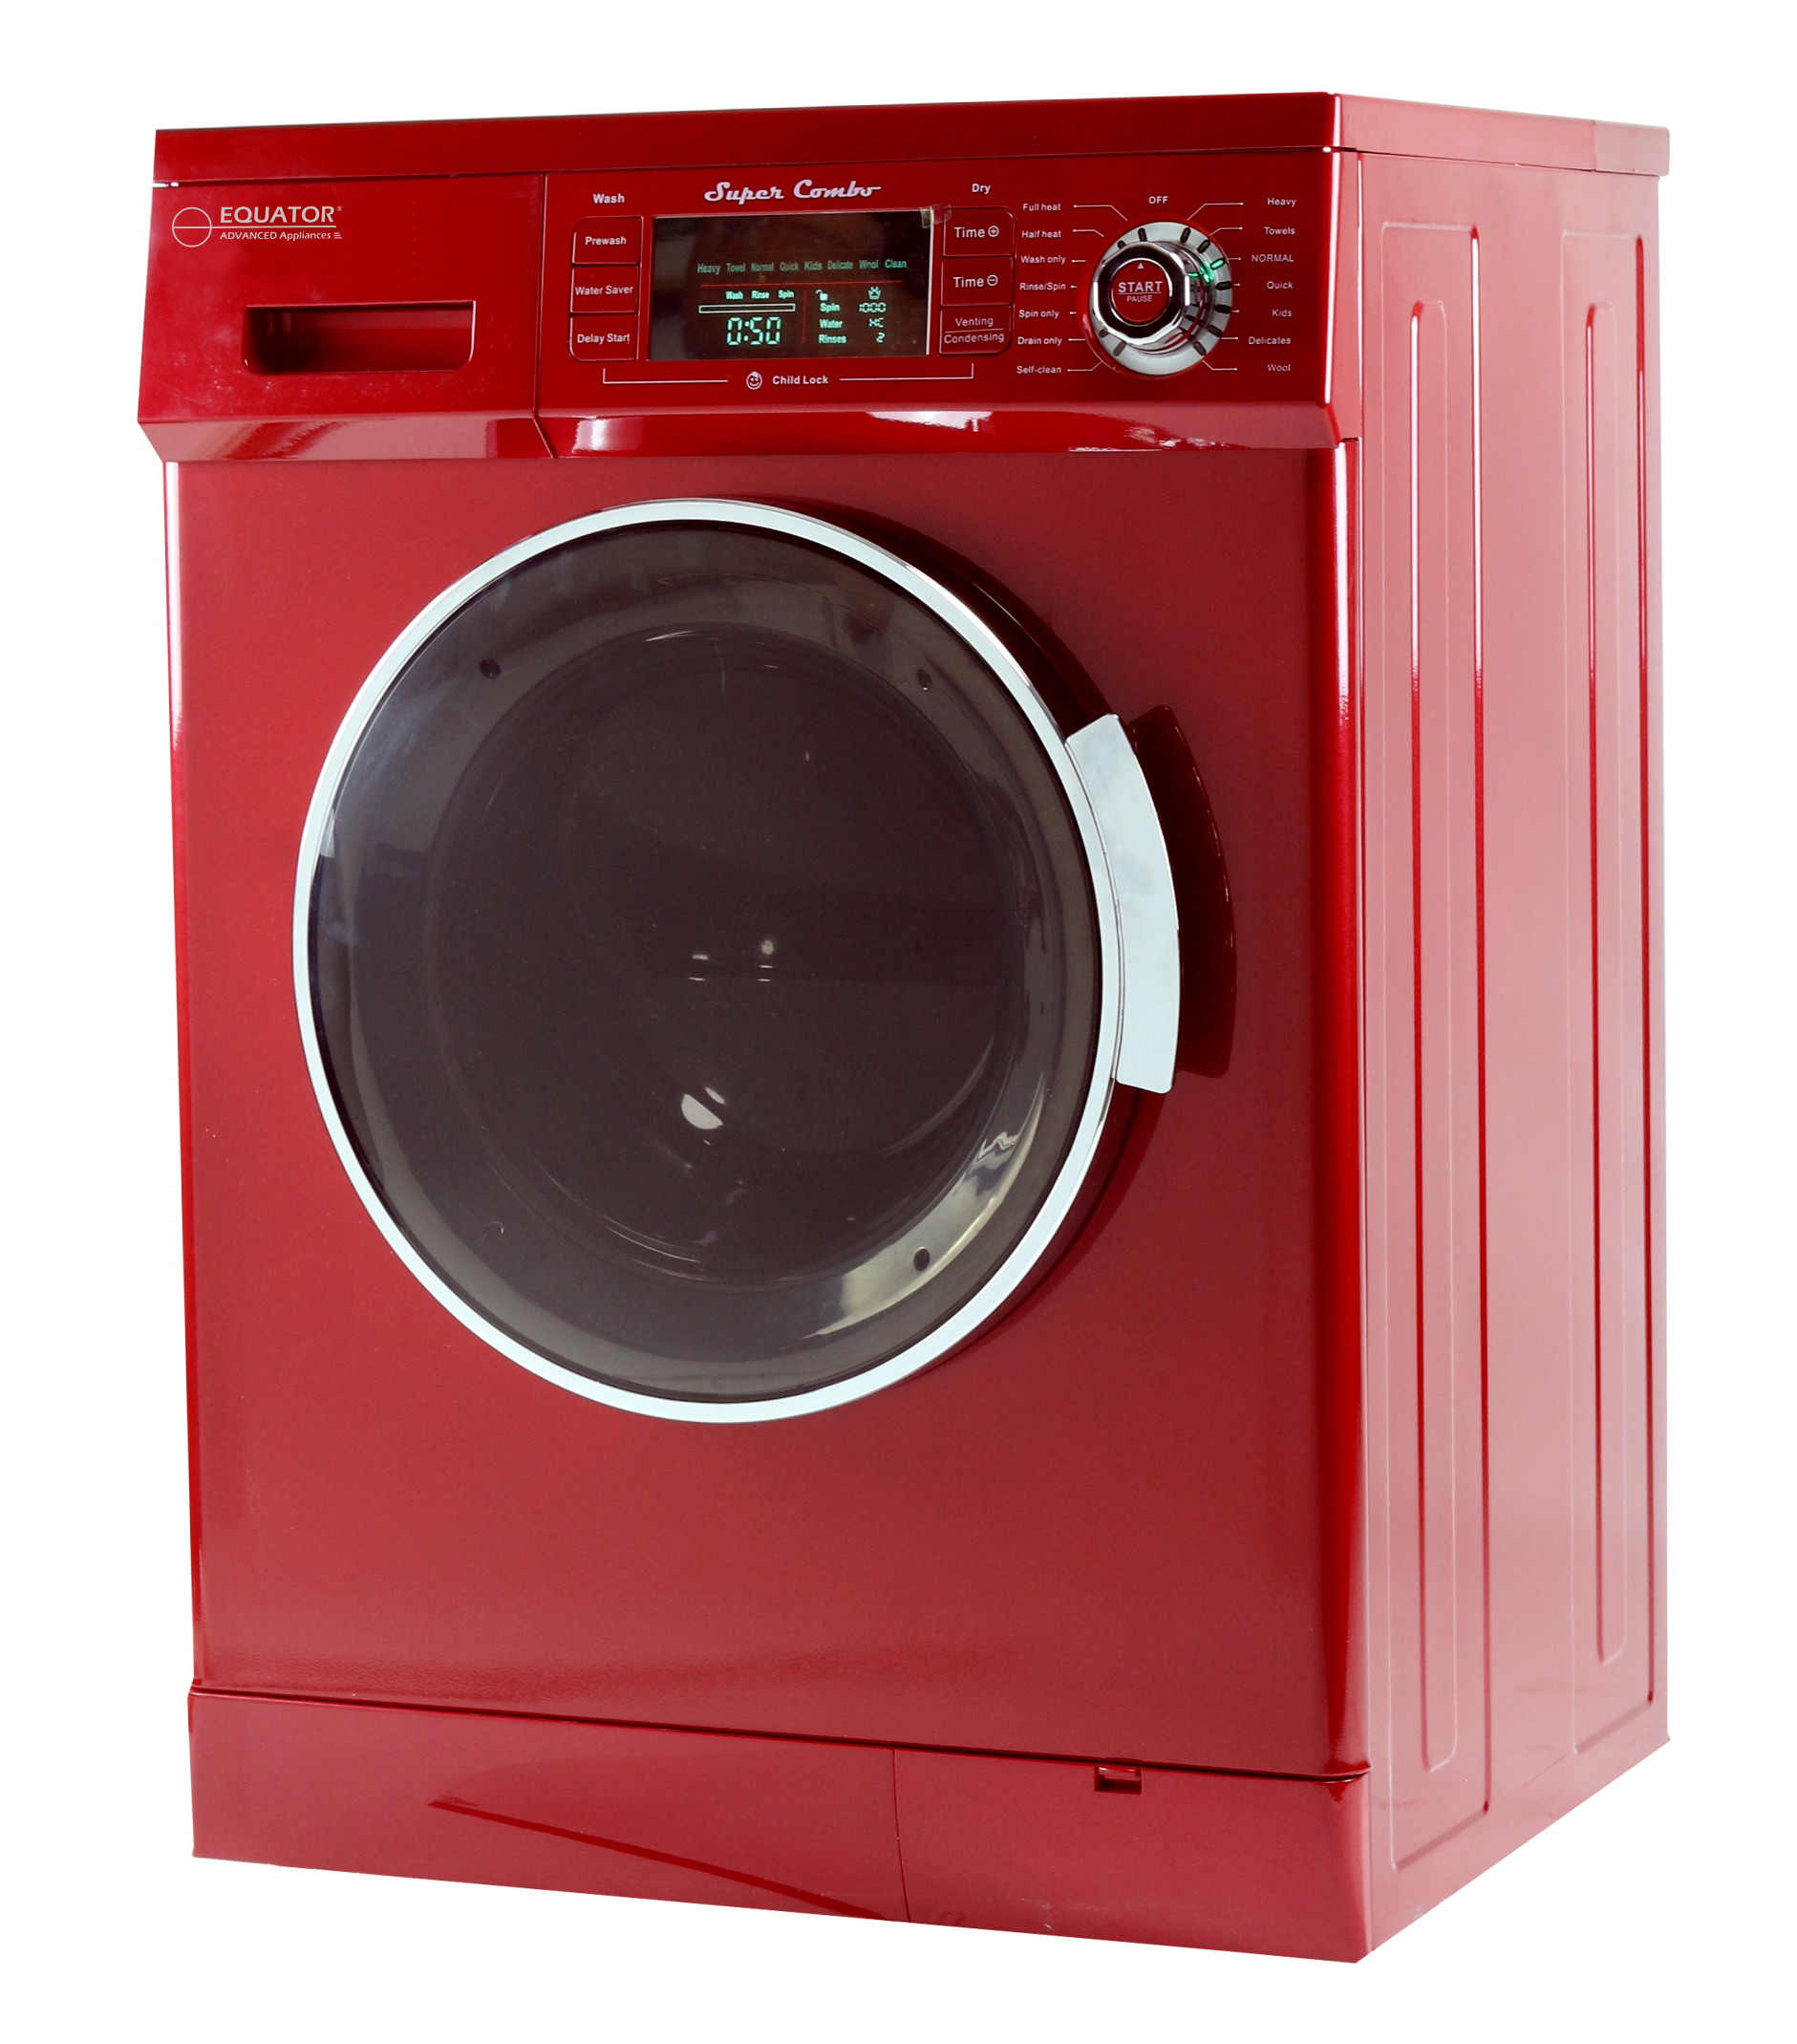 Super Combo Washer-Dryer, Merlot